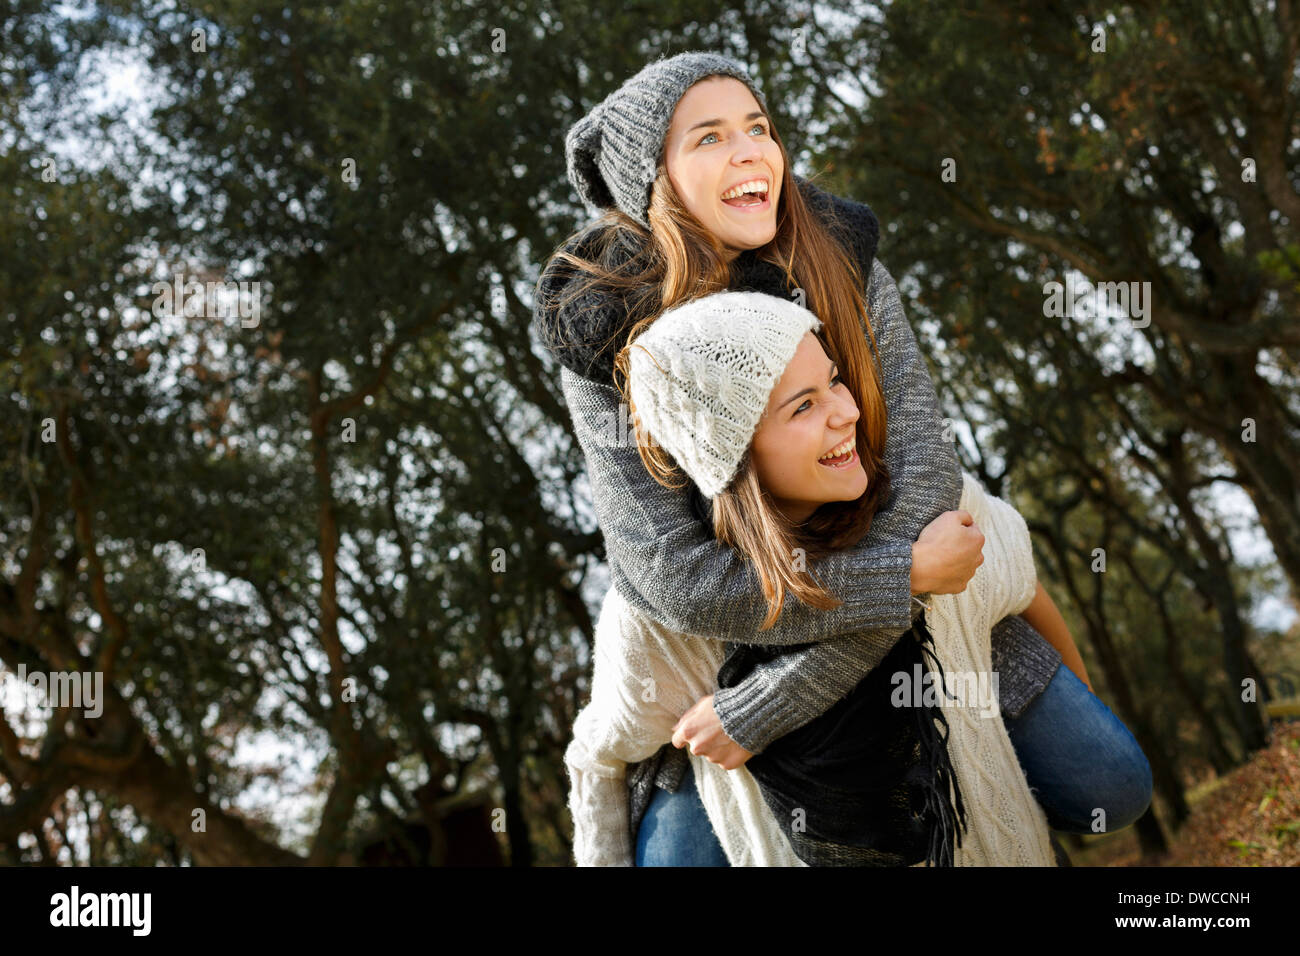 Sisters piggy back riding in forest - Stock Image